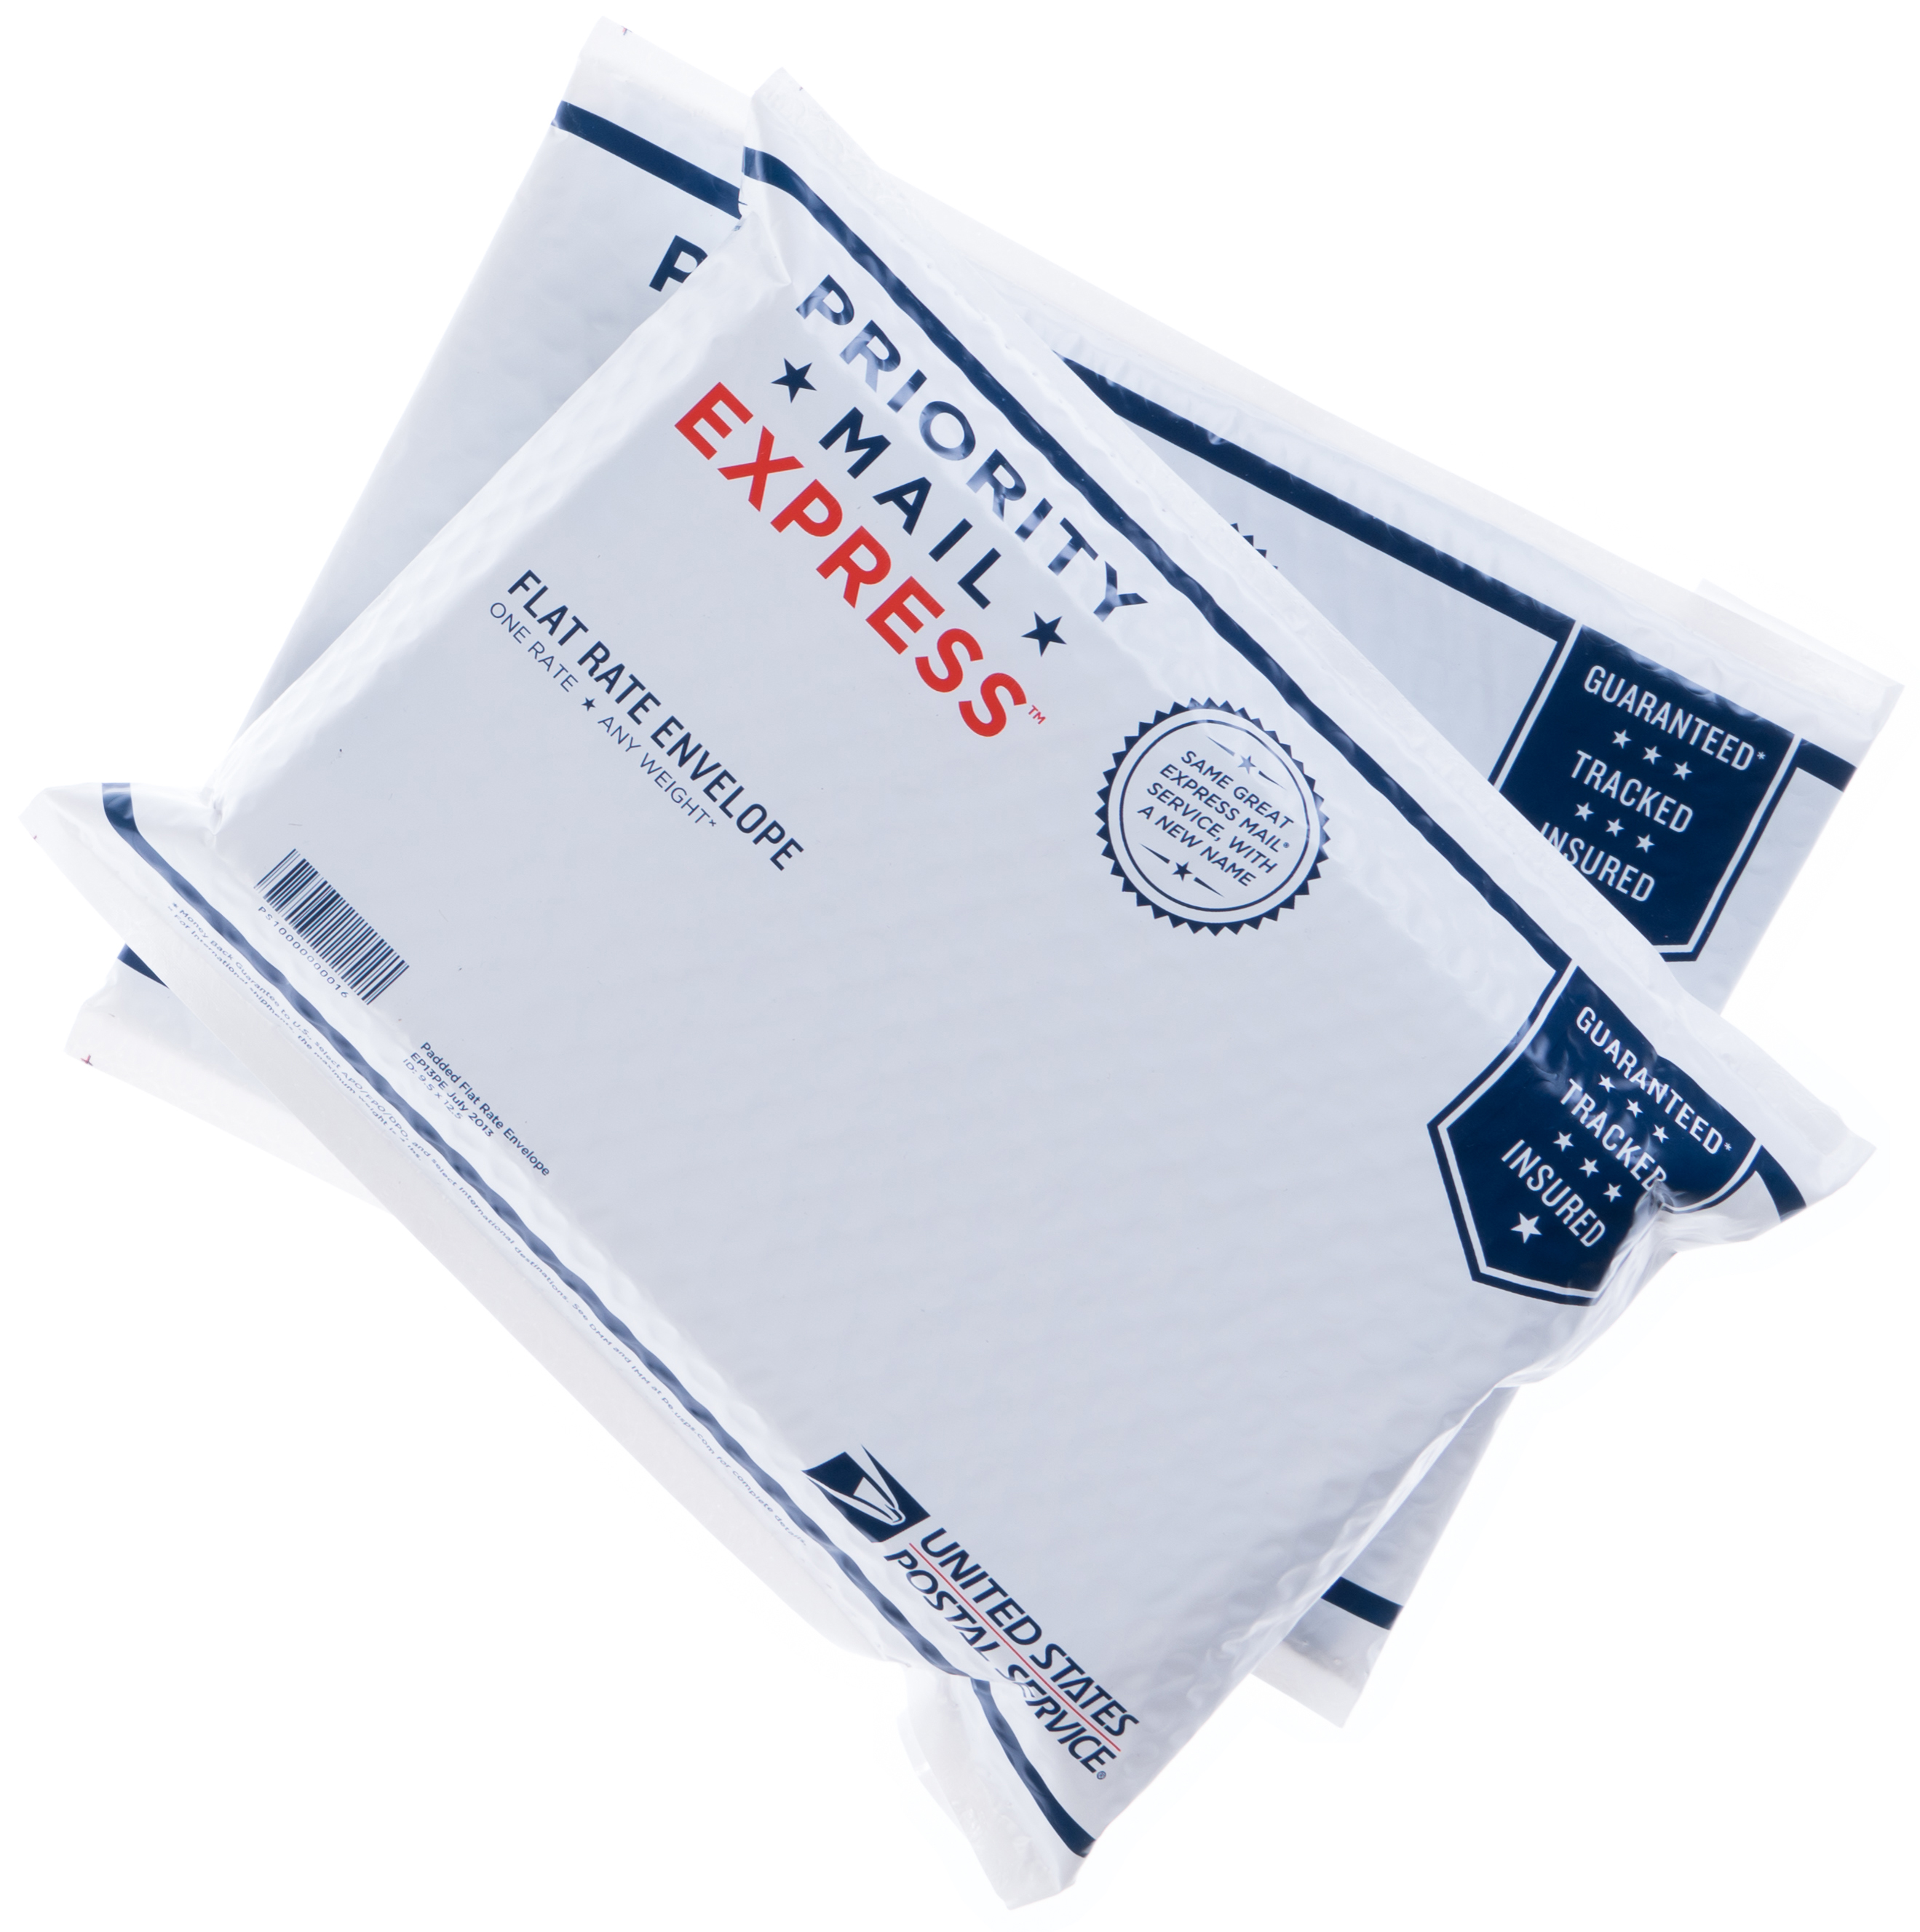 USPS Priority Mail Express Flat Rate Envelopes